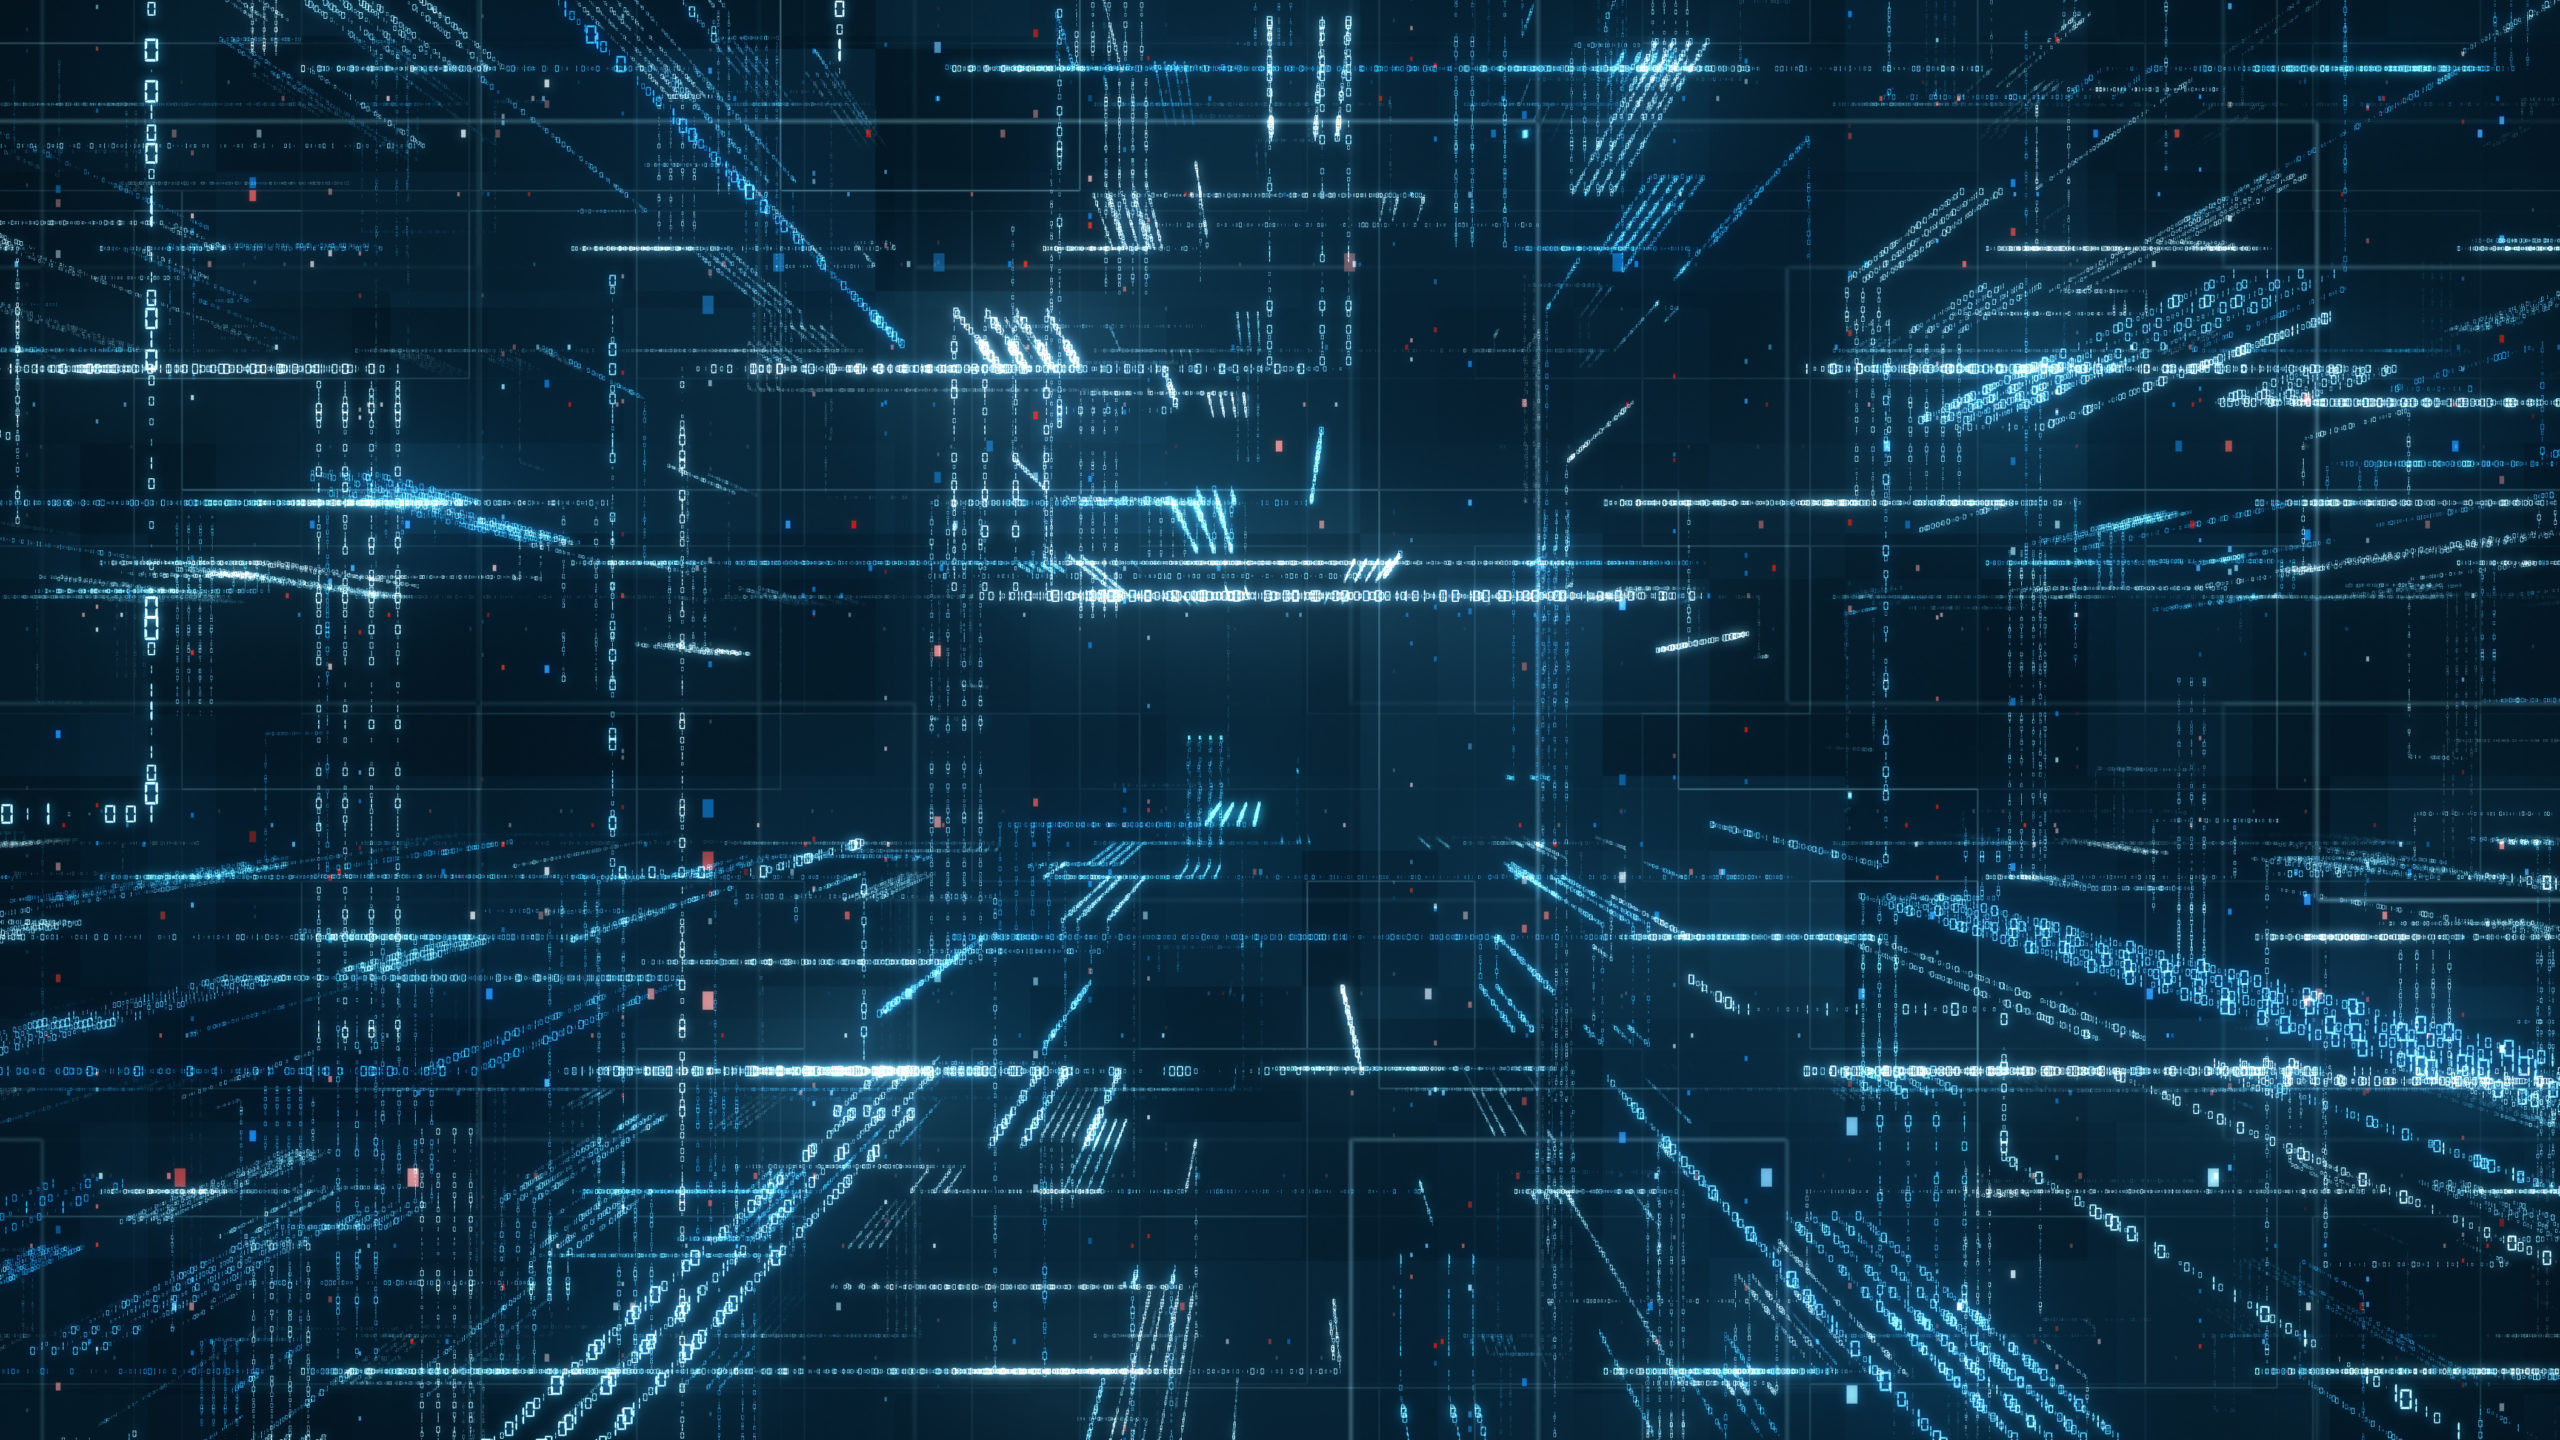 Digital binary code matrix background – 3D rendering of a scientific technology data binary code network conveying connectivity, complexity and data flood of modern digital age